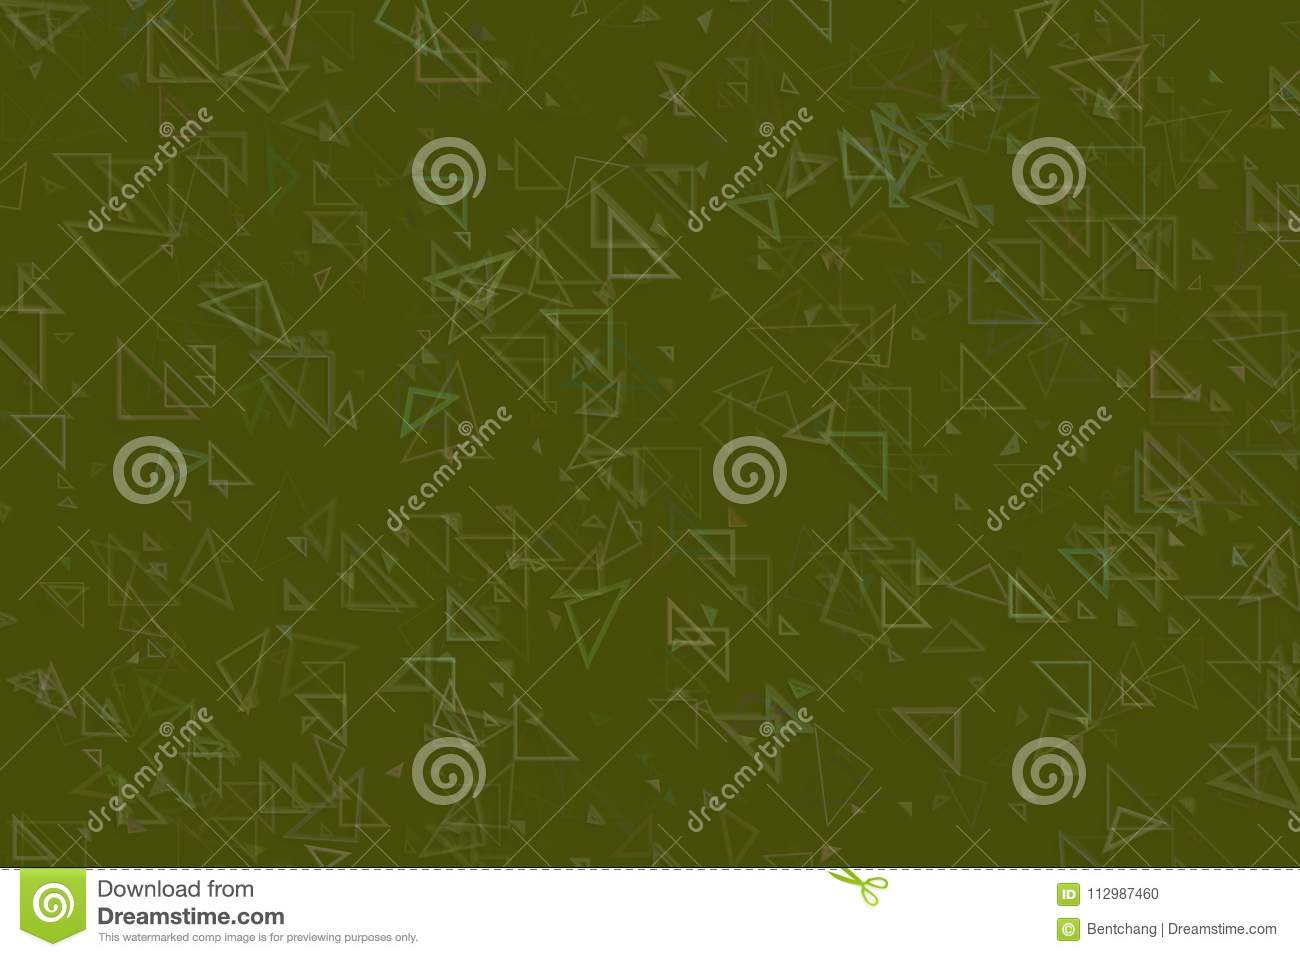 Abstract background with shape. Pattern, creative, triangle, wallpaper & fashion.